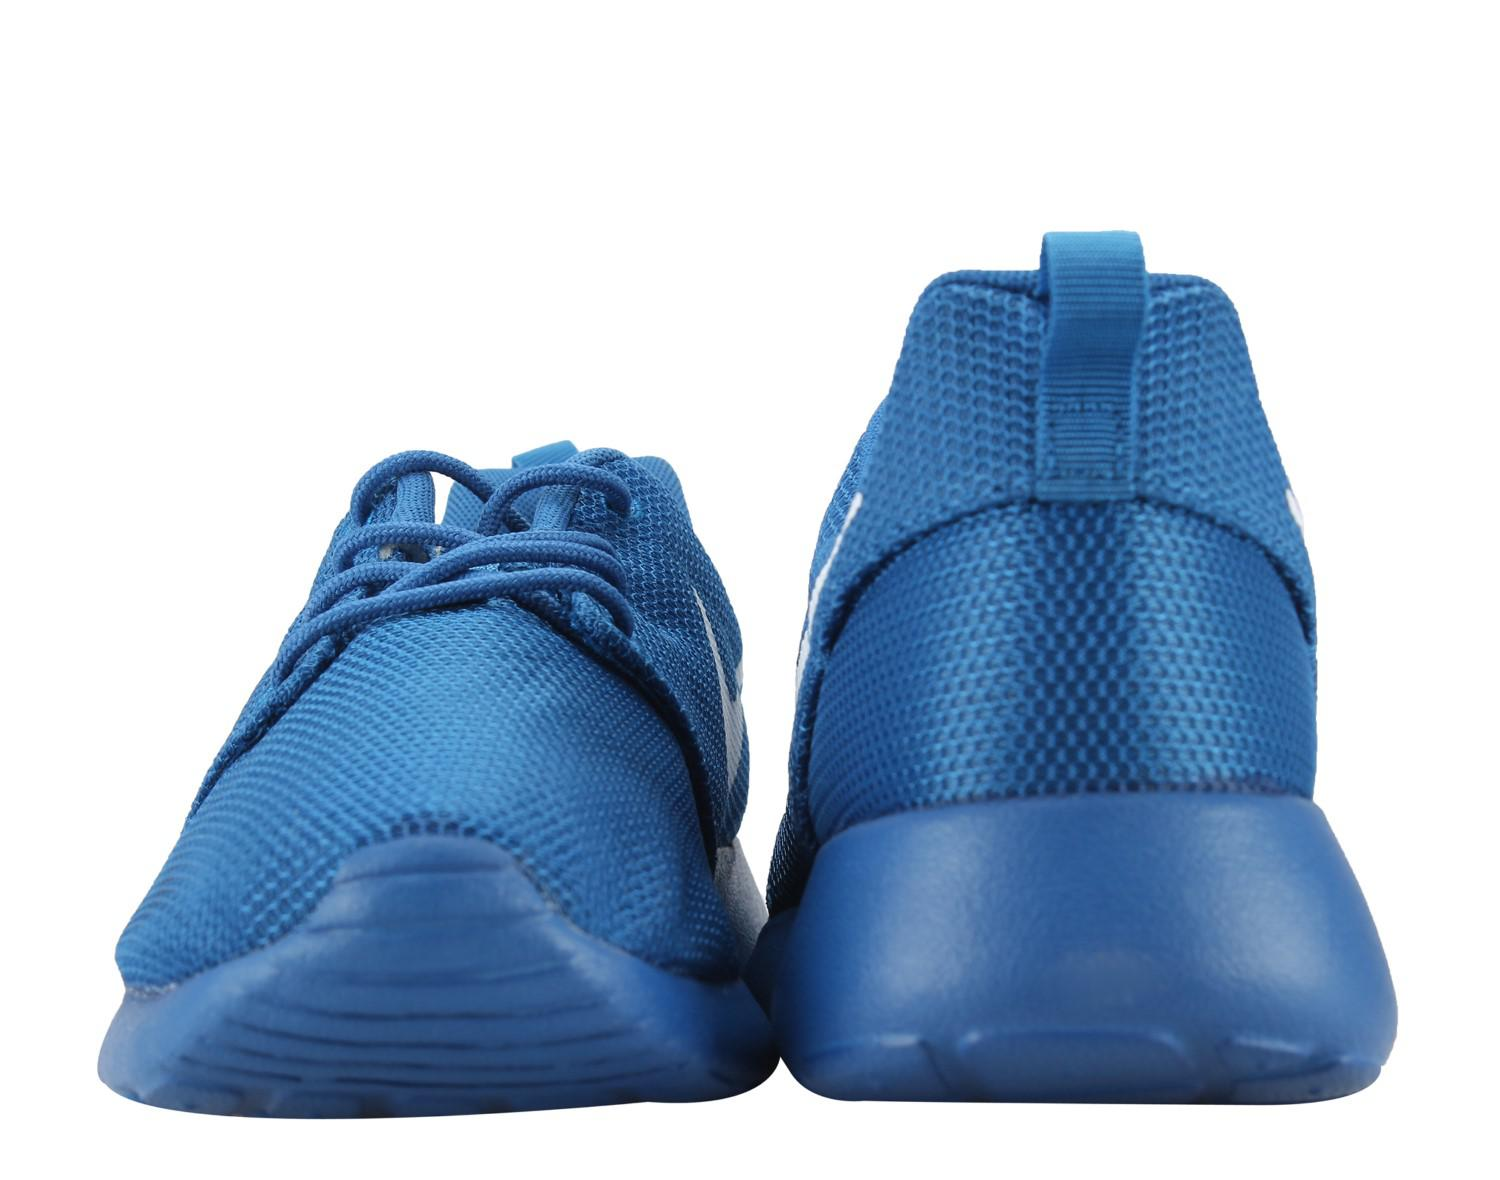 06db67697e11 ... release date lyst nike roshe one running shoes size 10.5 in blue for  men 3d9c4 fd715